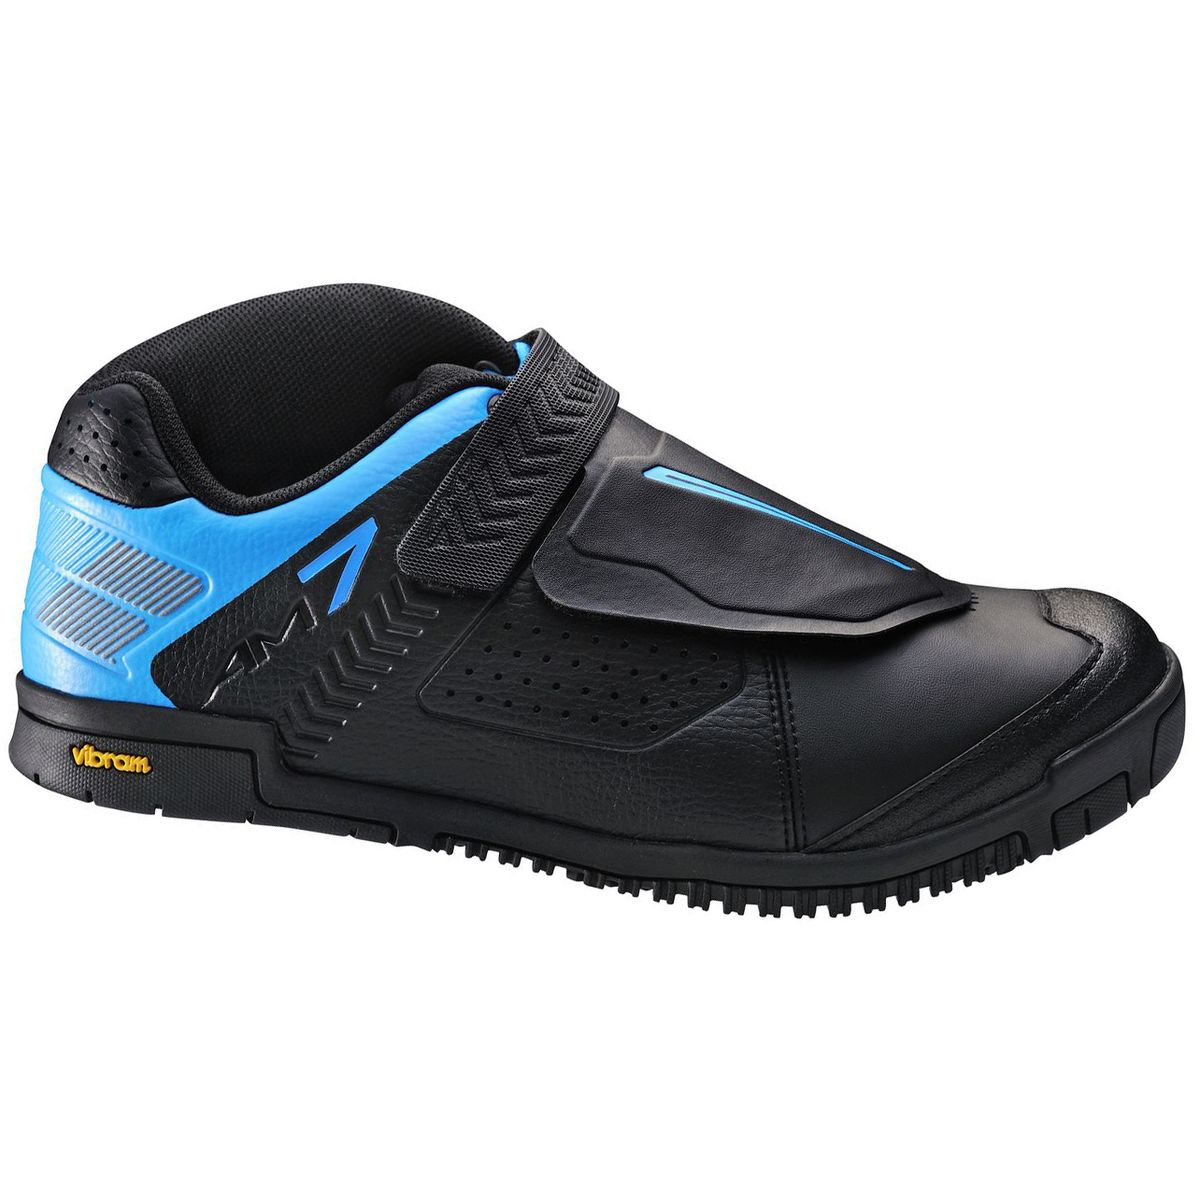 Mountain Bike Off Road Shoes Mens Size